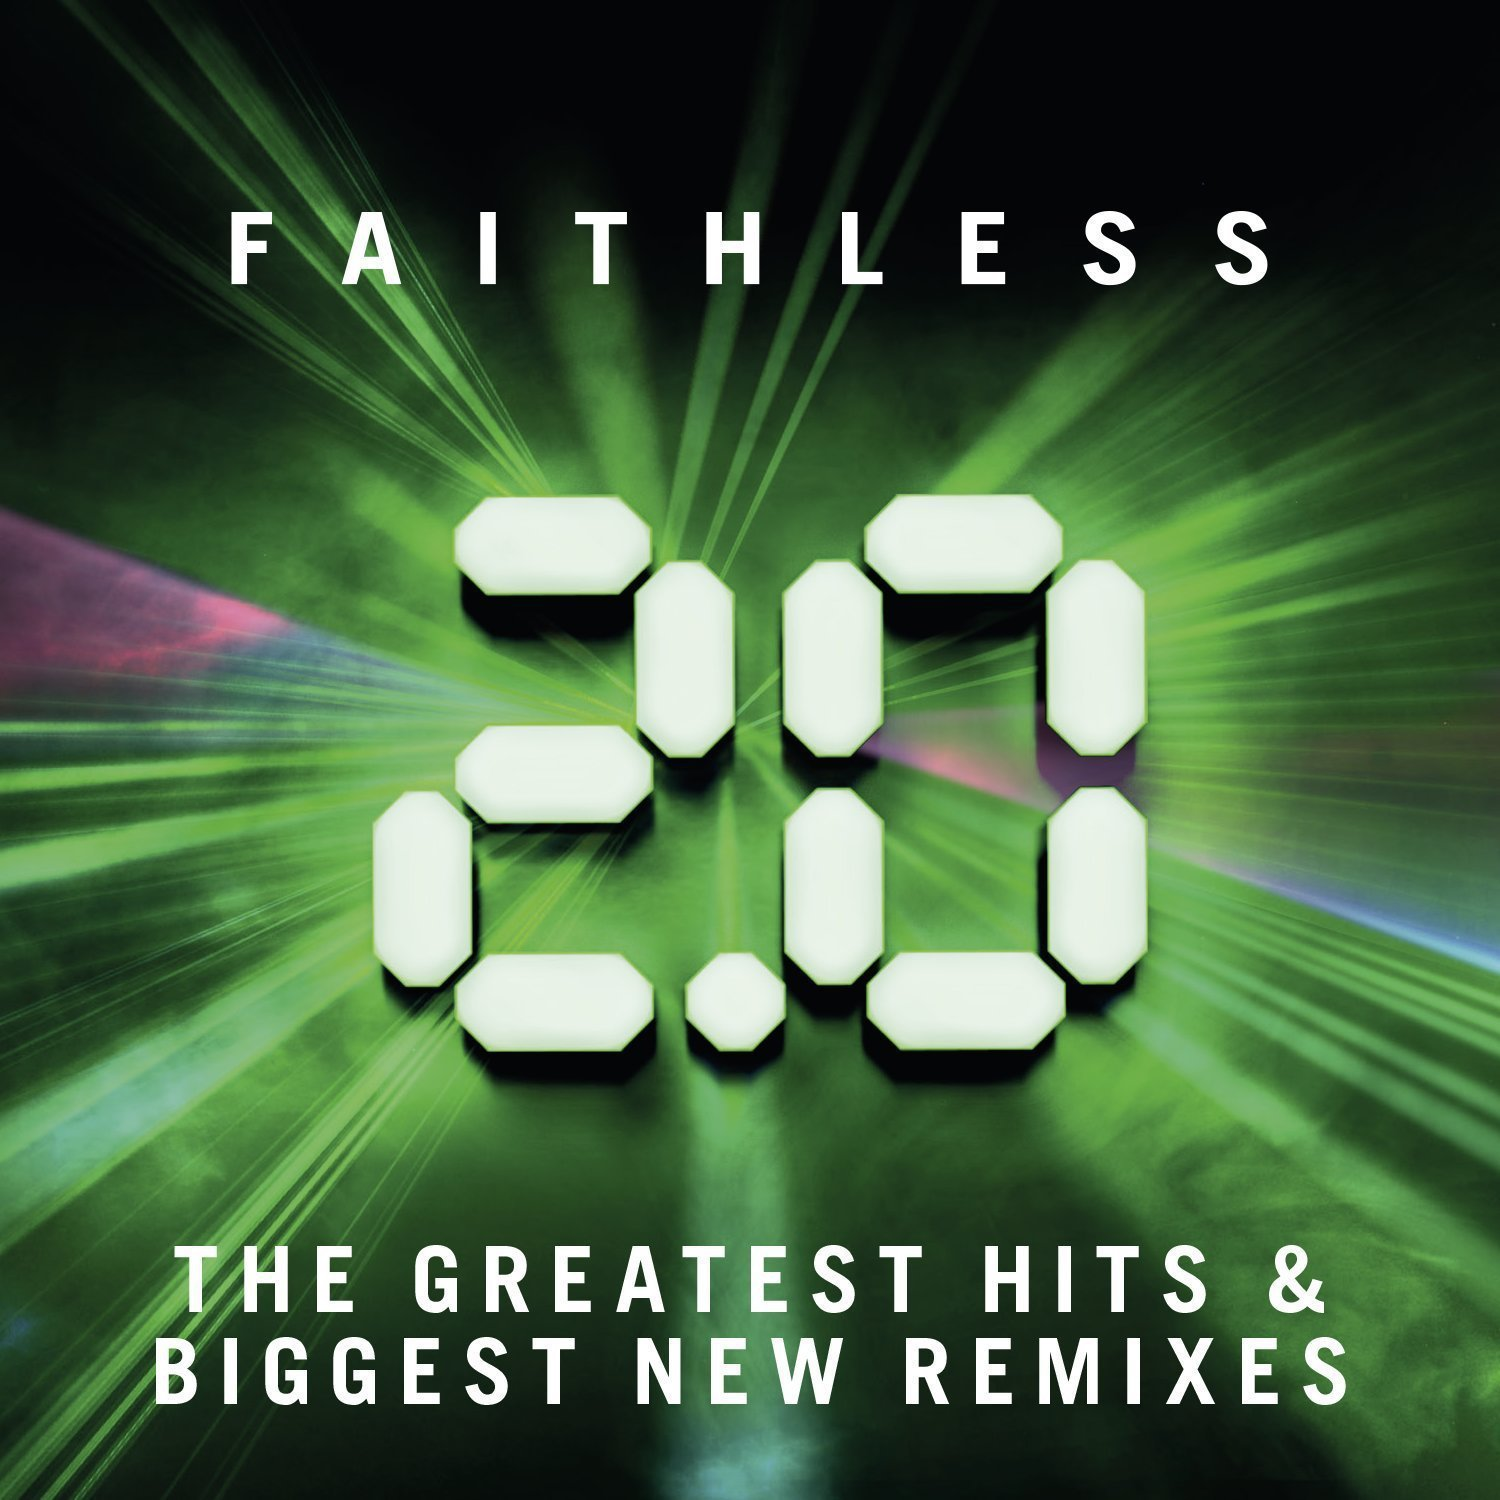 Faithless - Faithless 2.0 - The Greatest Hits & Biggest New Remixes